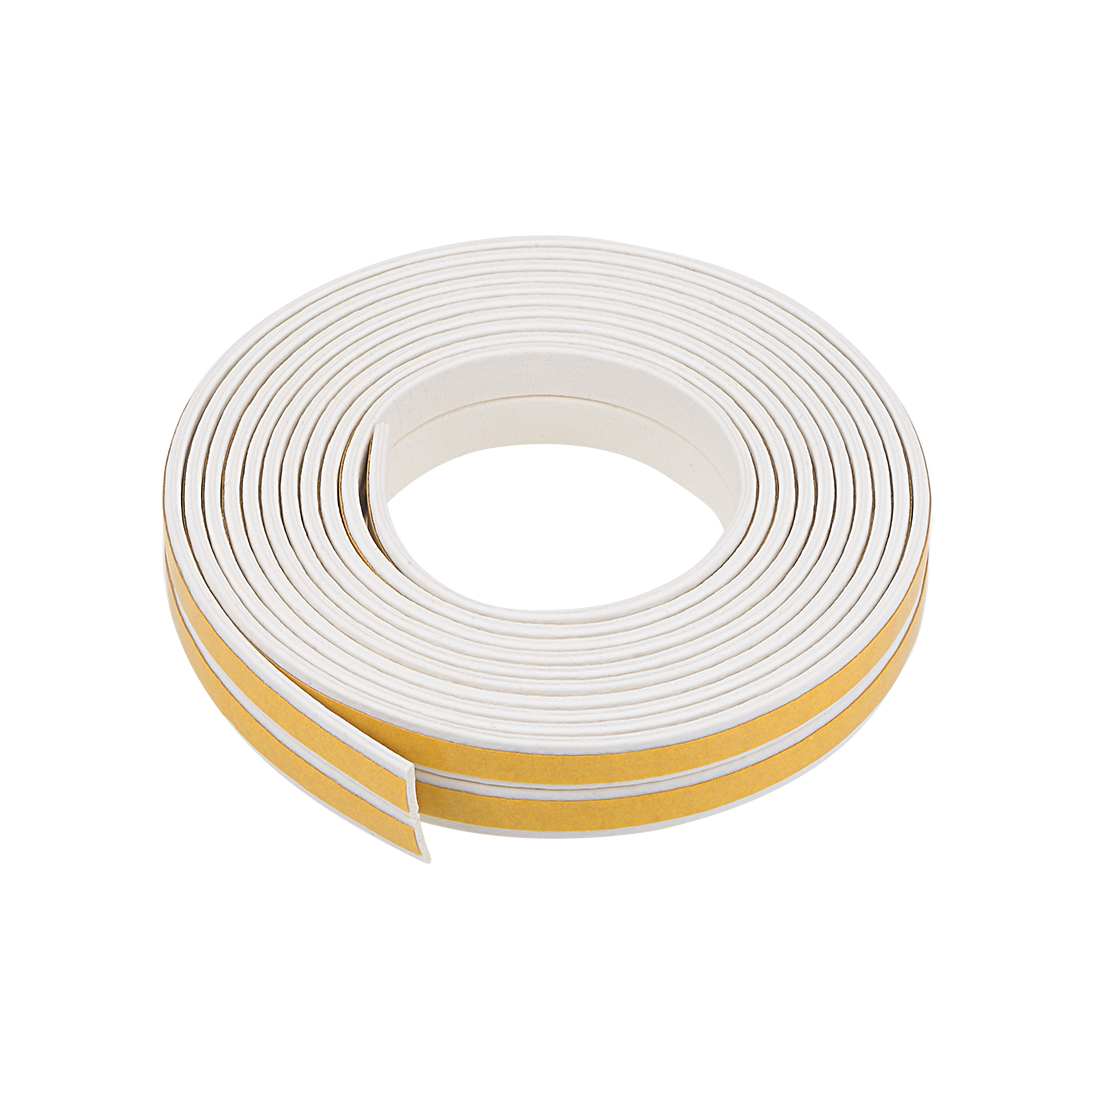 Foam Tape Adhesive 9mm Wide 2mm Thick, Total 16.4 Feet White 2Pcs